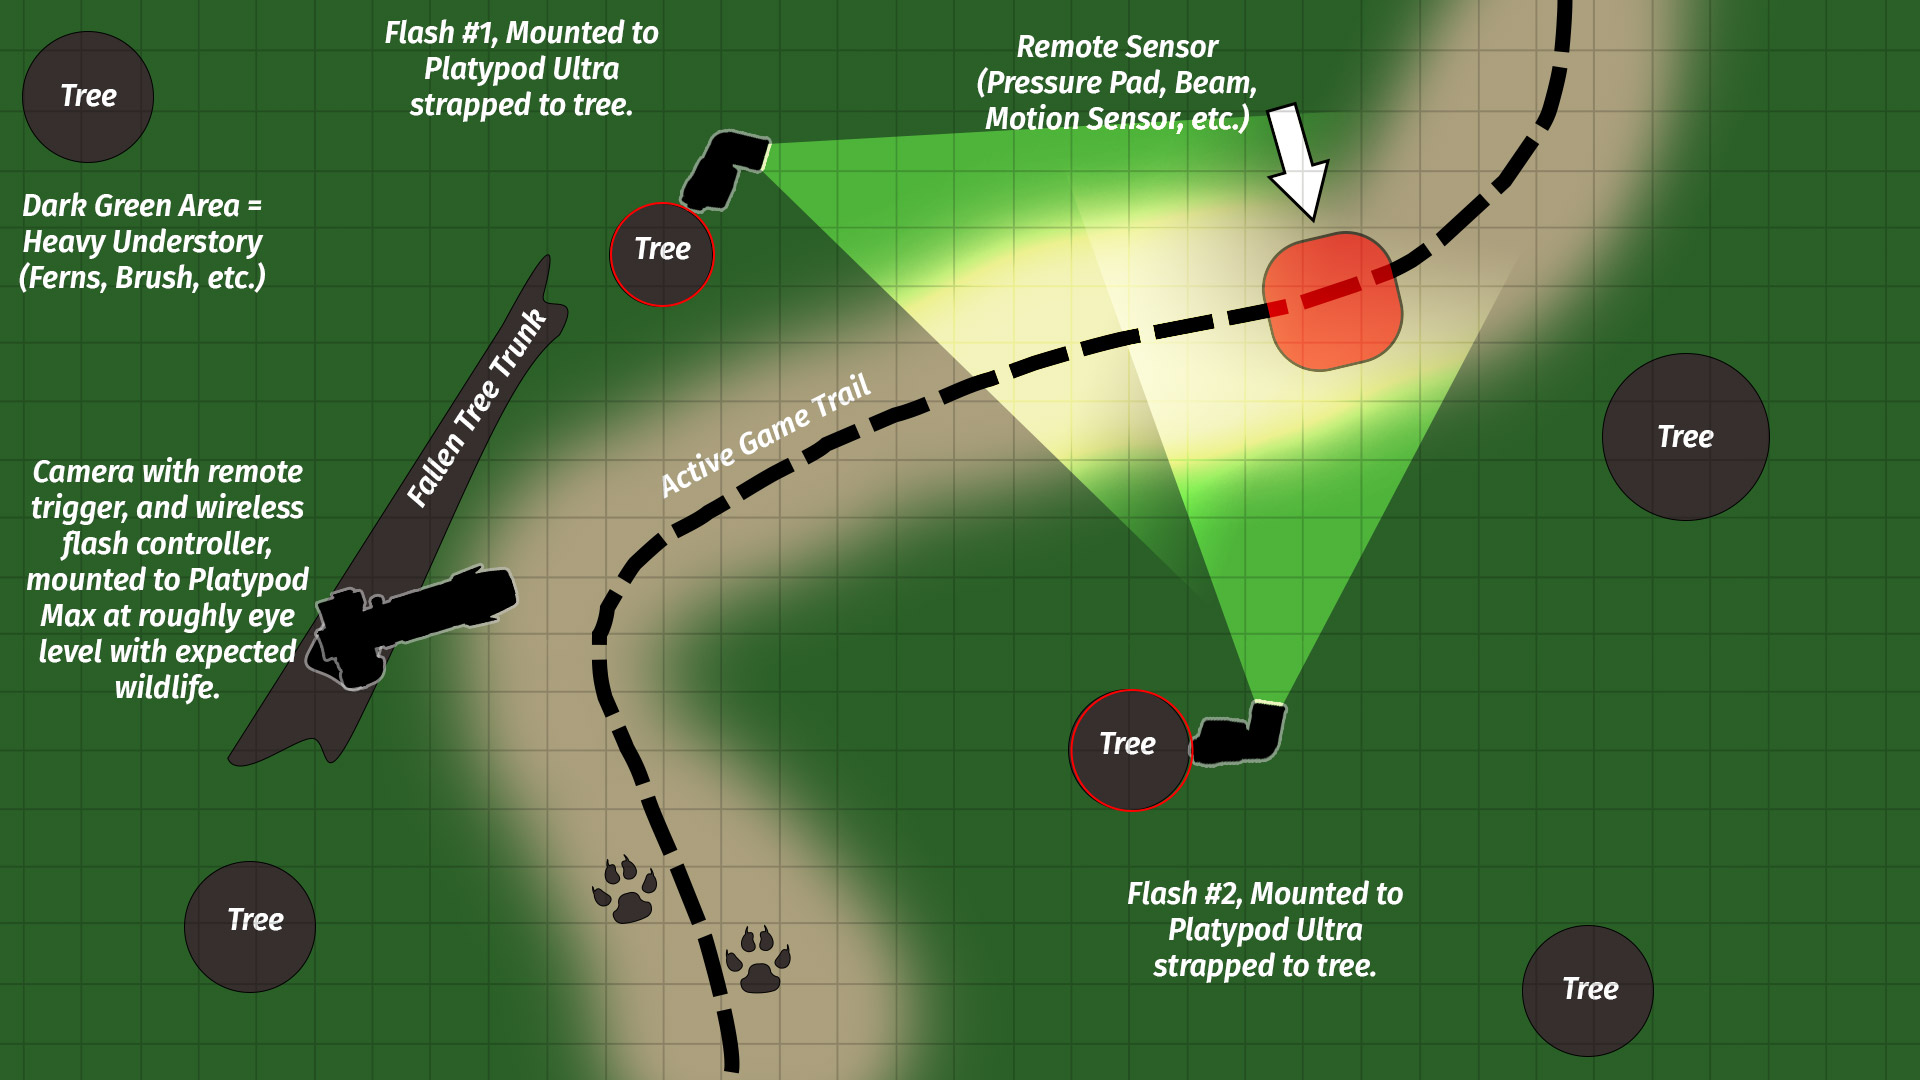 Get Ready To Remote Part 2 Advanced Camera Traps Photofocus Trap Diagram The Elements Needed For A Nighttime Photo